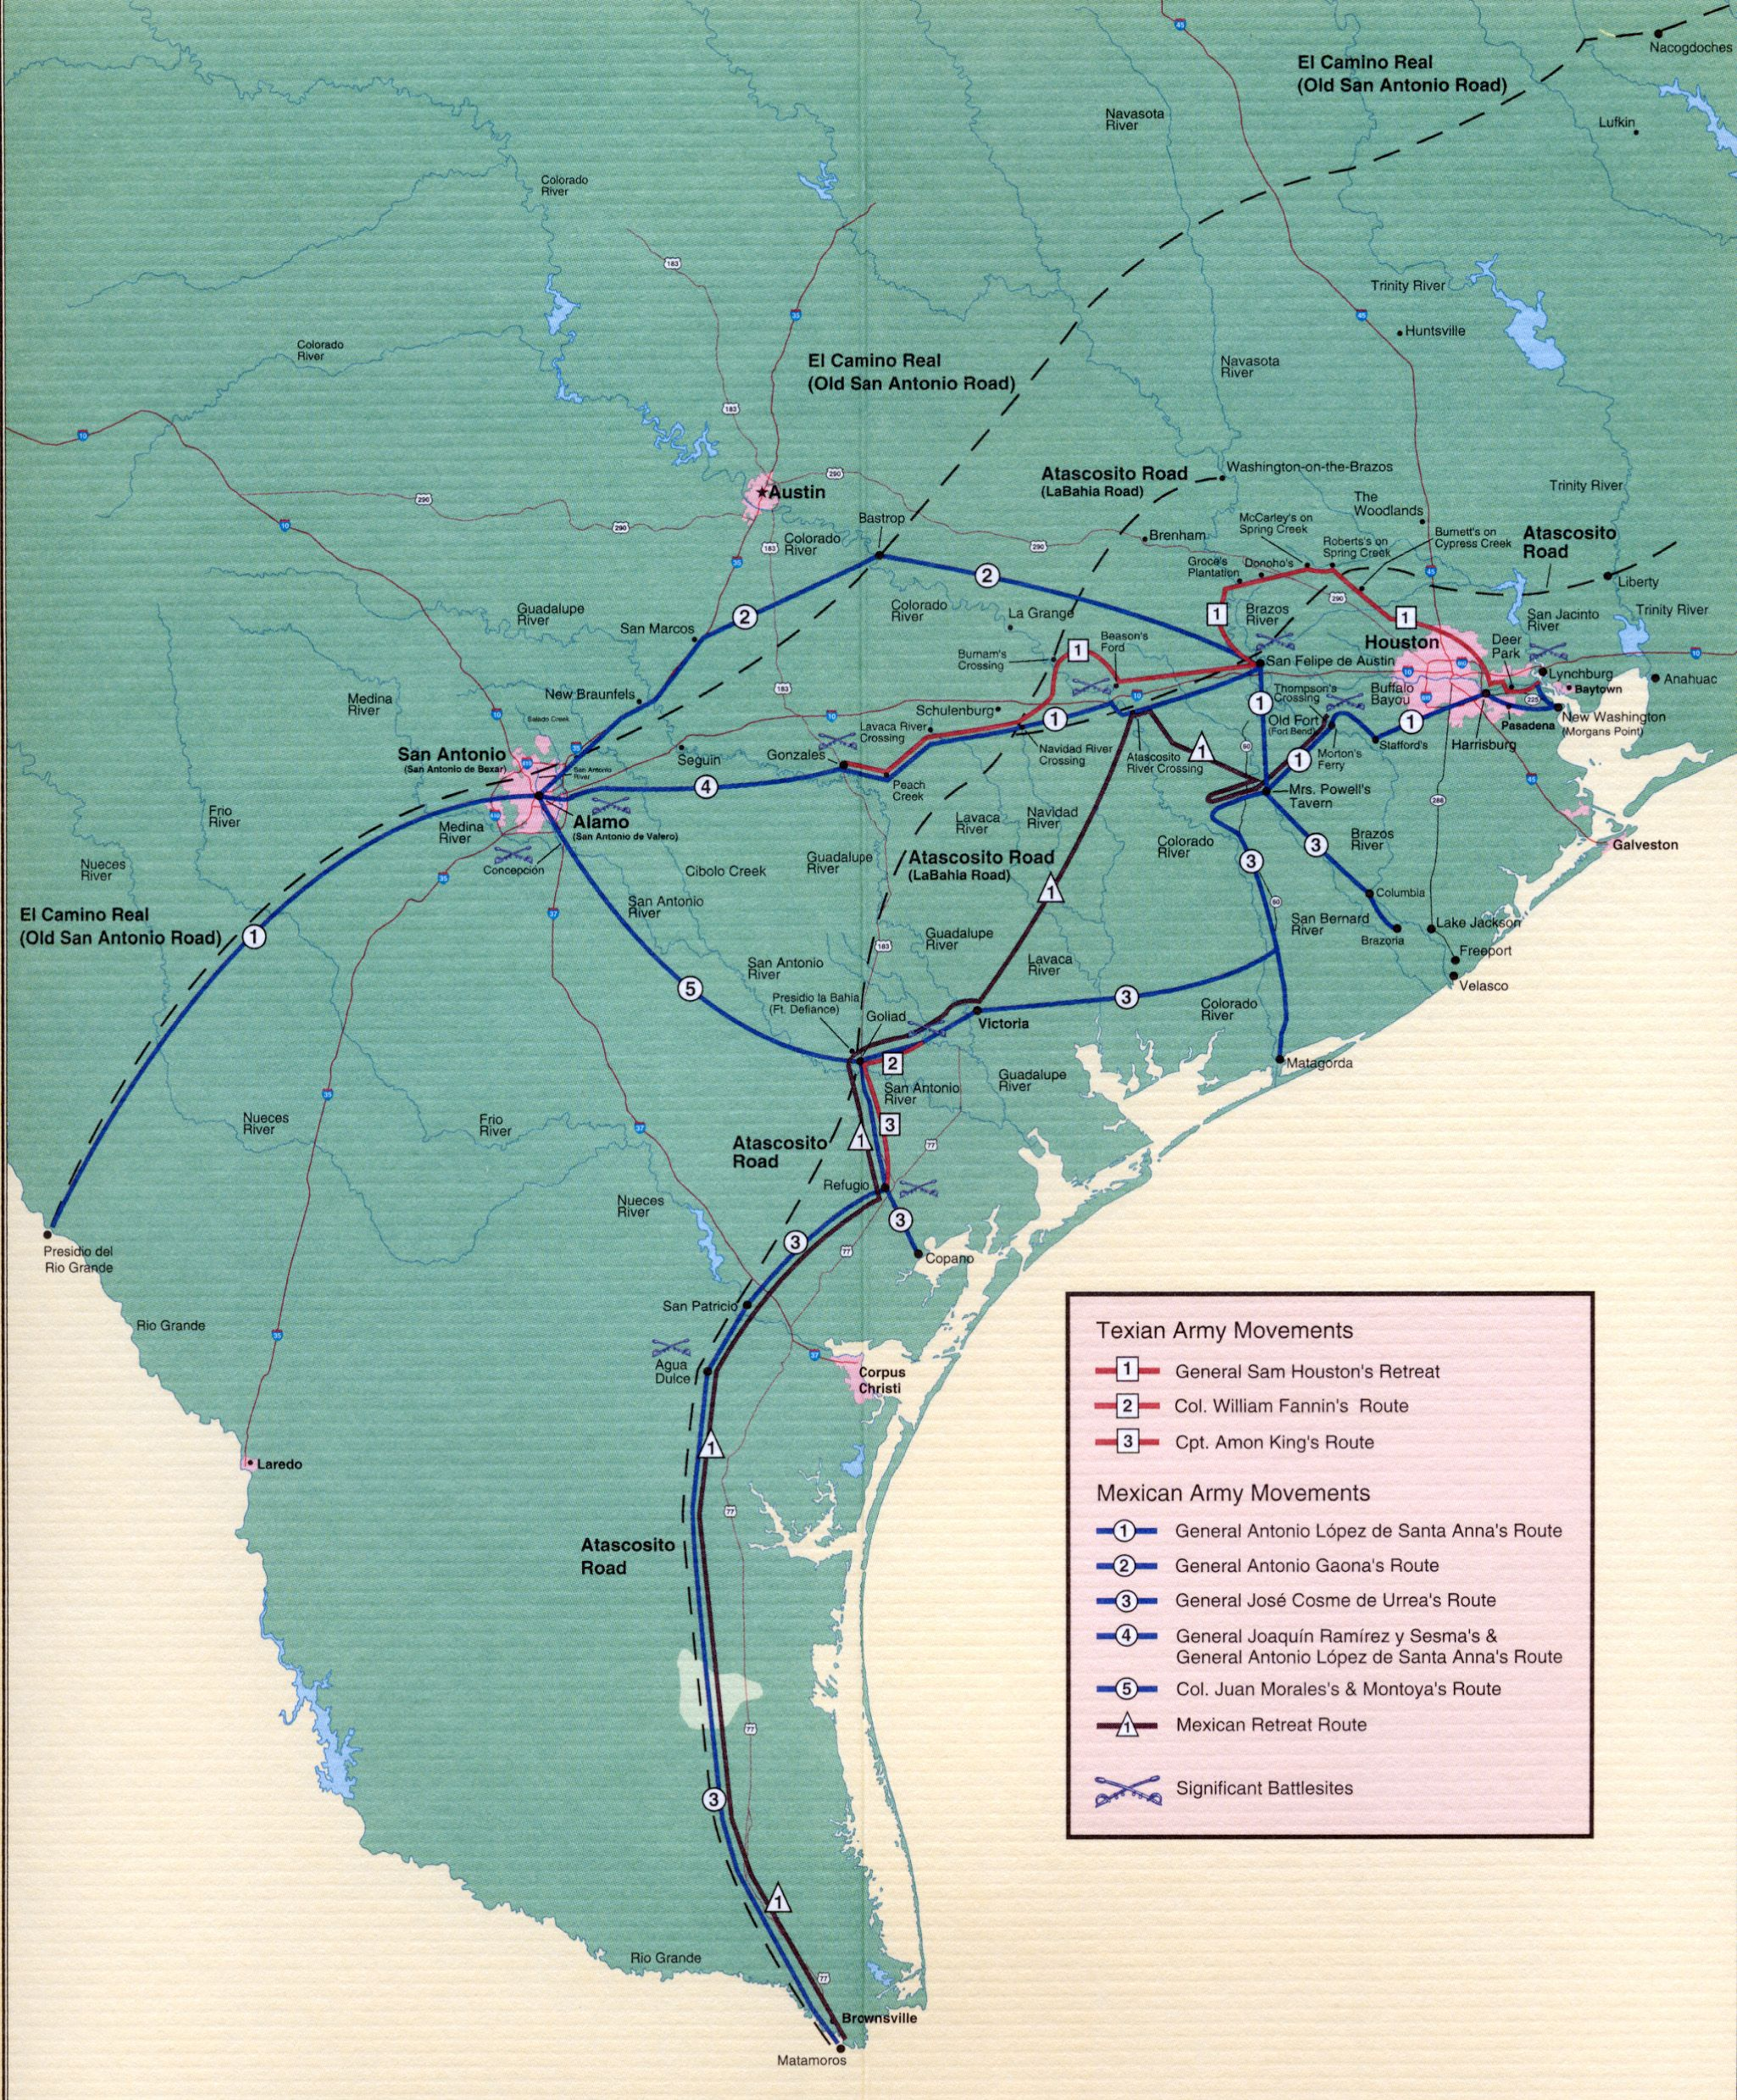 Texas Revolution maps Texas Revolution maps